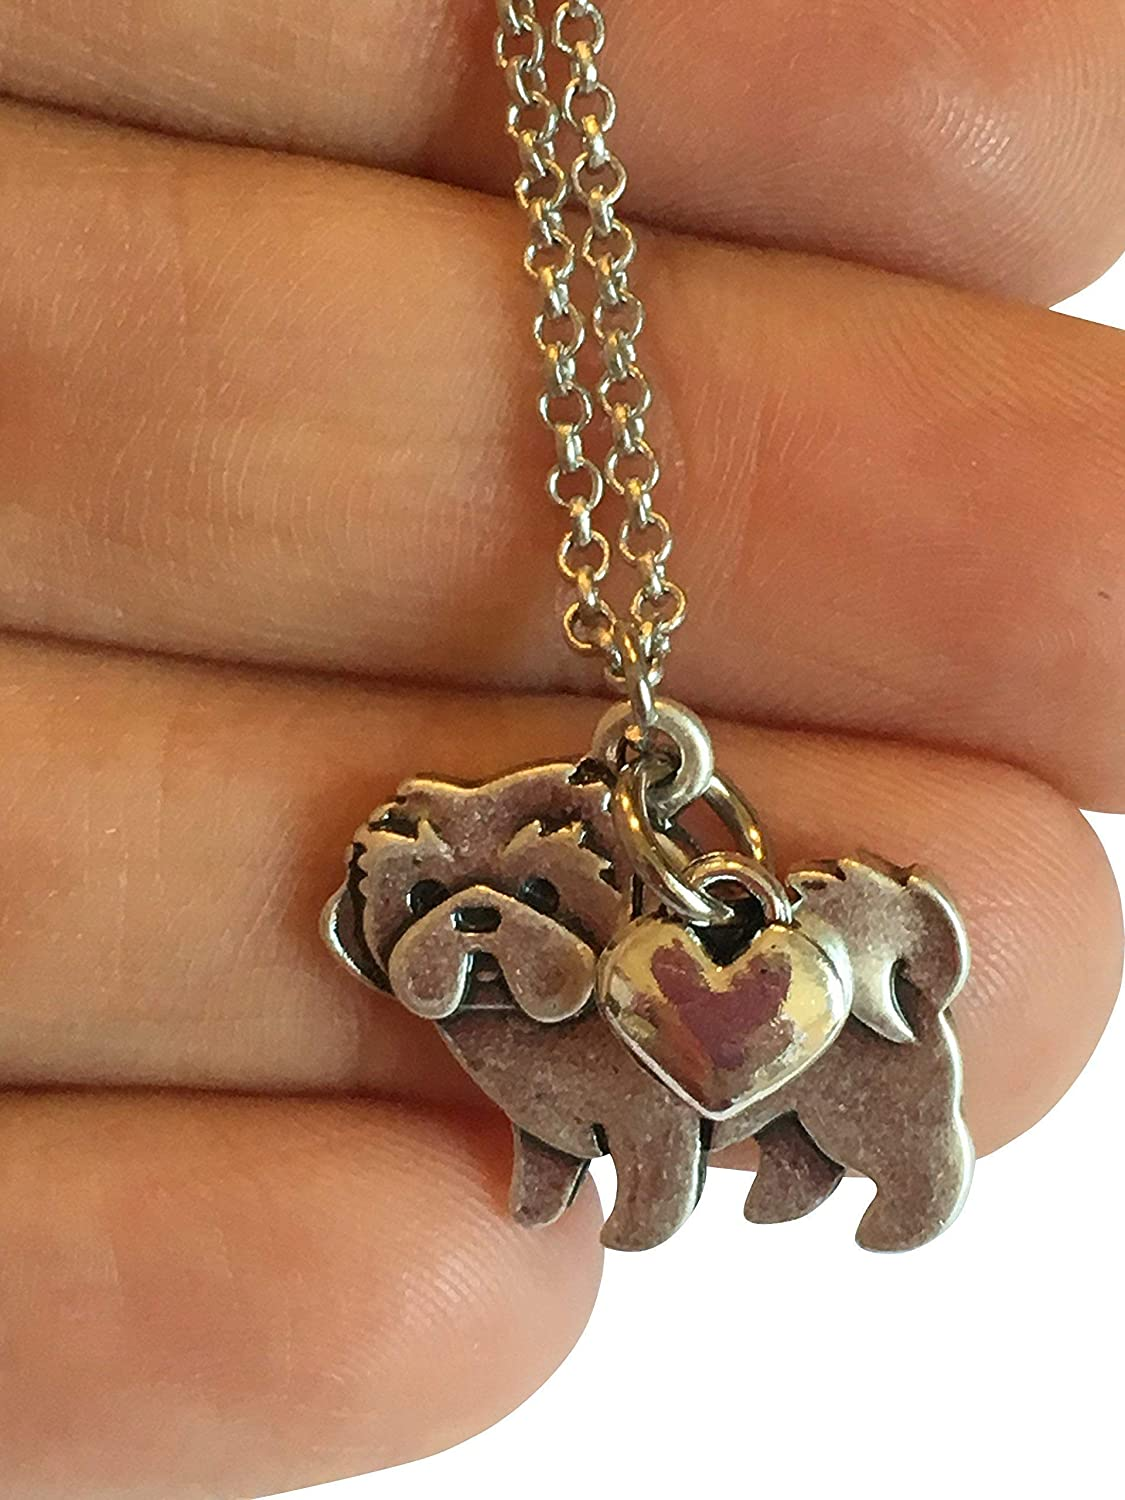 Shih Tzu Dog Pets Charms Silver Plated Charm Bracelet Pendant with Loop W//Ring